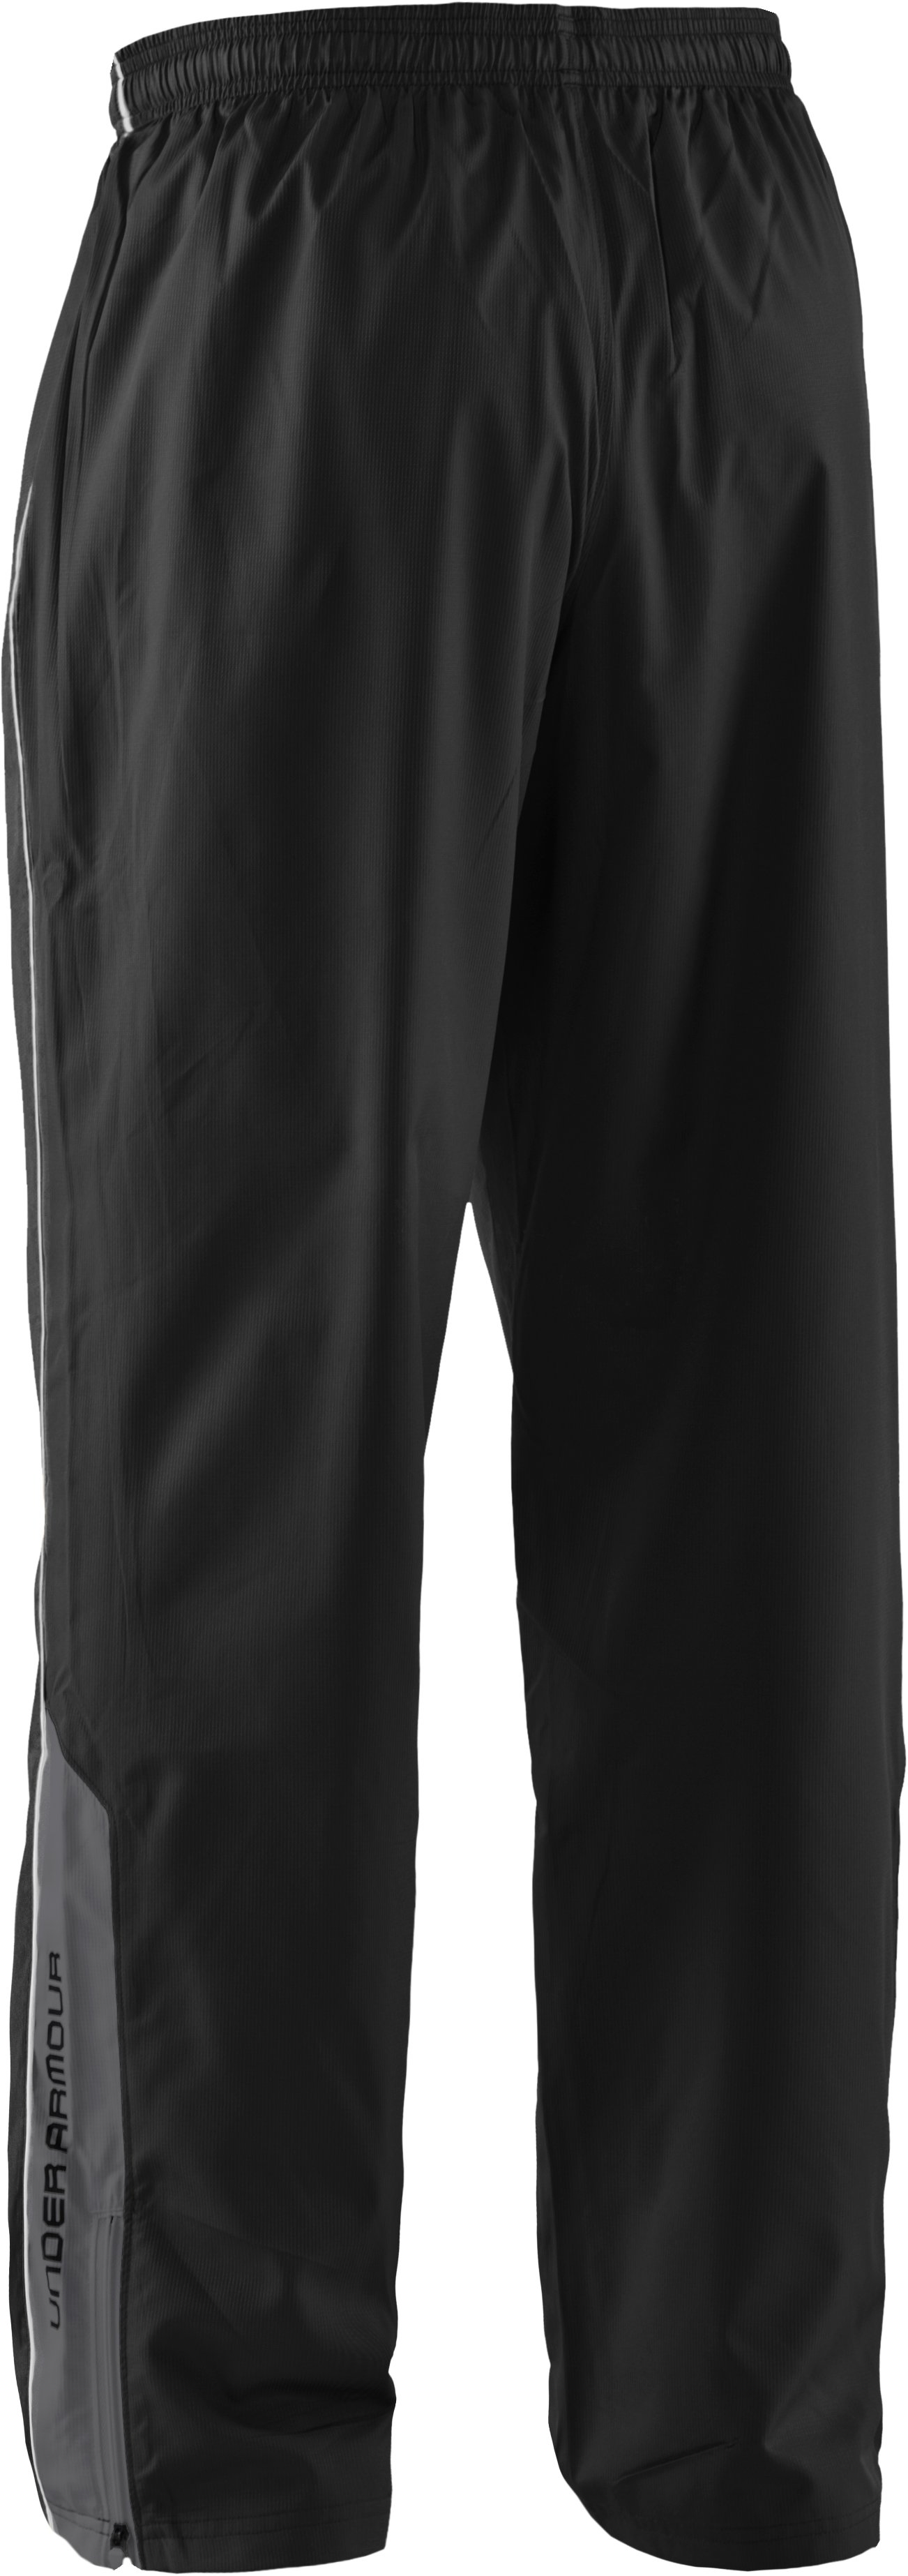 Men's UA Bandito Woven Warm-Up Pants, Black ,